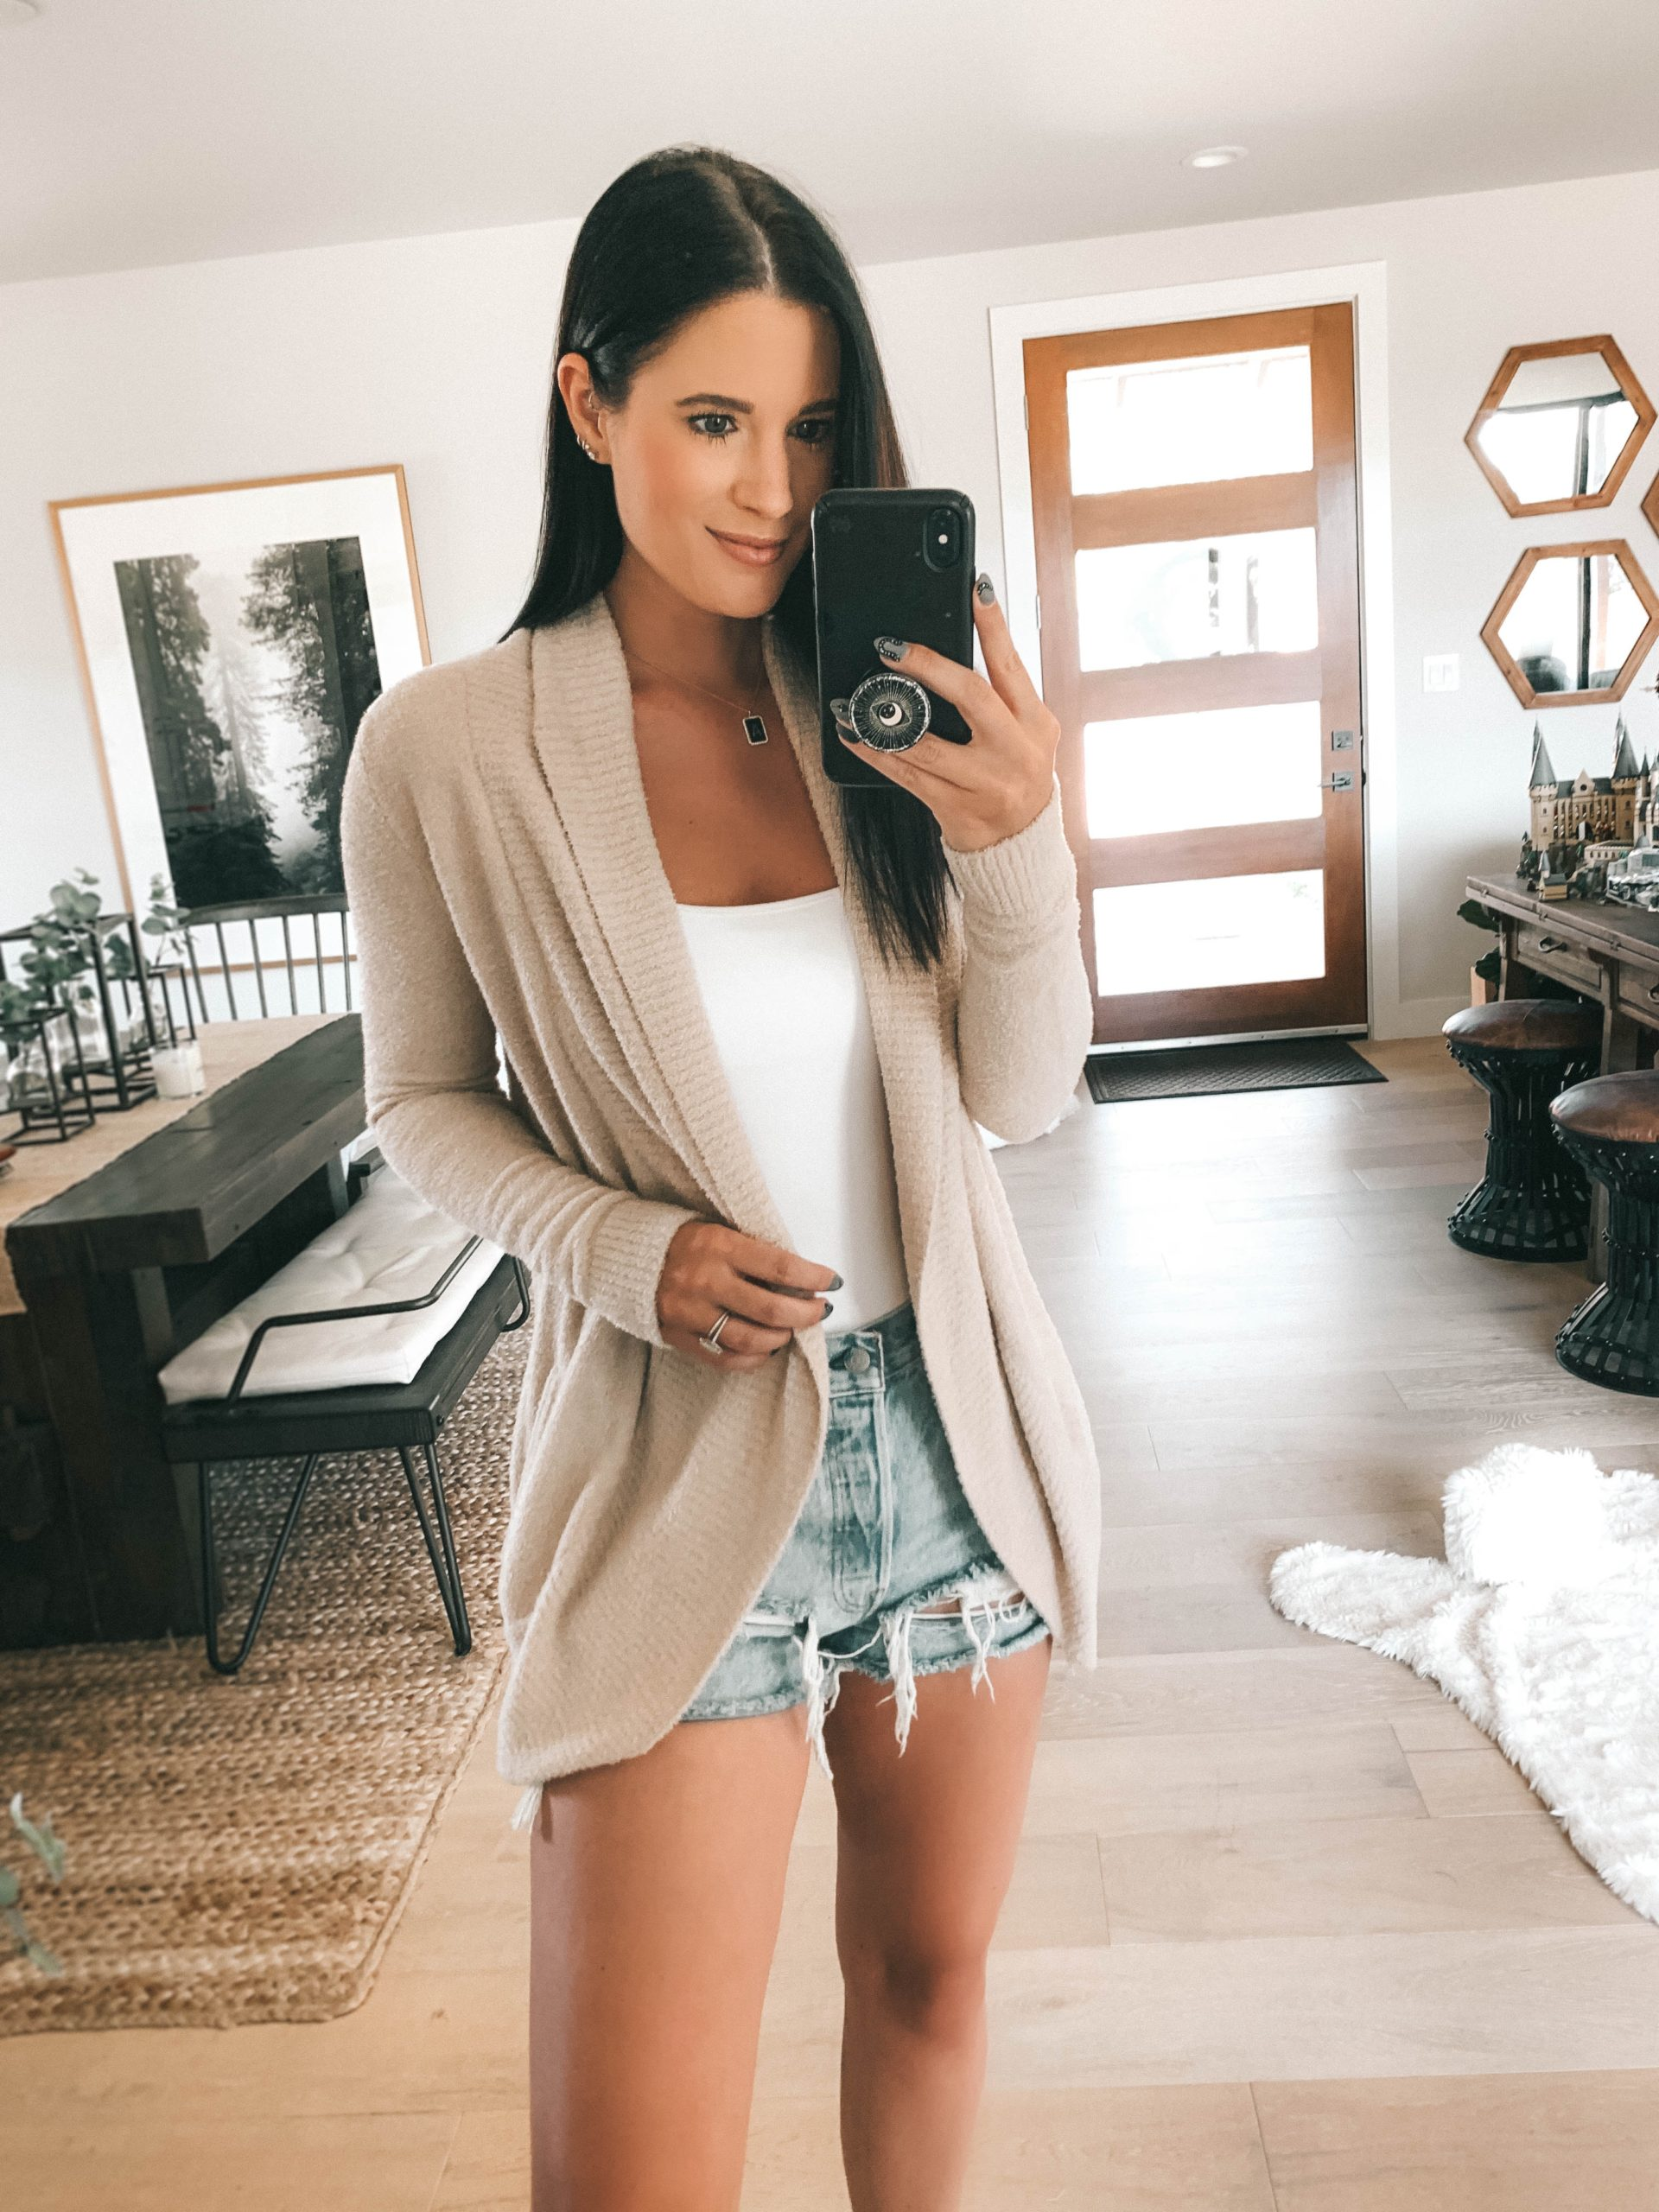 Nordstrom Anniversary Sale by popular Austin fashion blog, Dressed to Kill: image of a woman wearing a tan cardigan, white top, and distressed denim shorts.